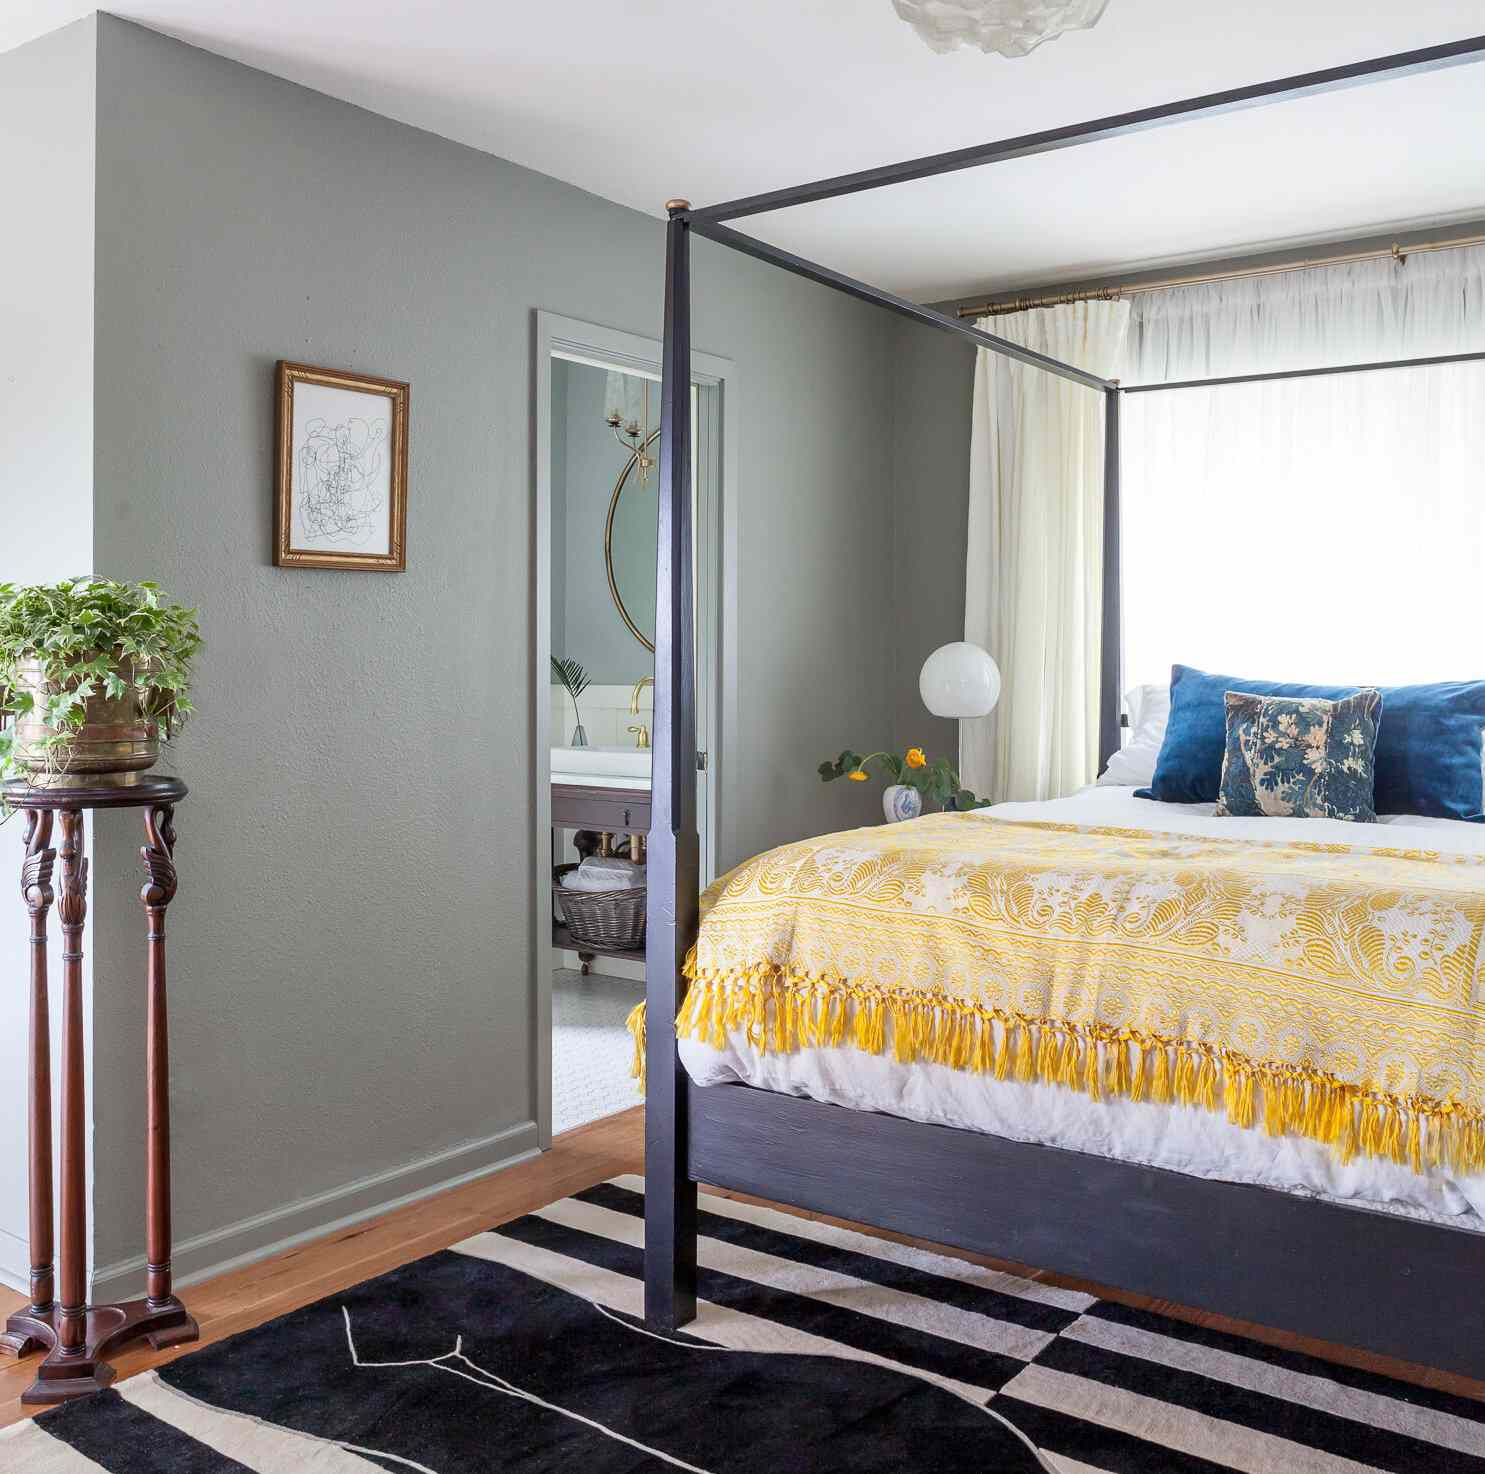 bed with four poster frame, blue and yellow bedding, gray walls